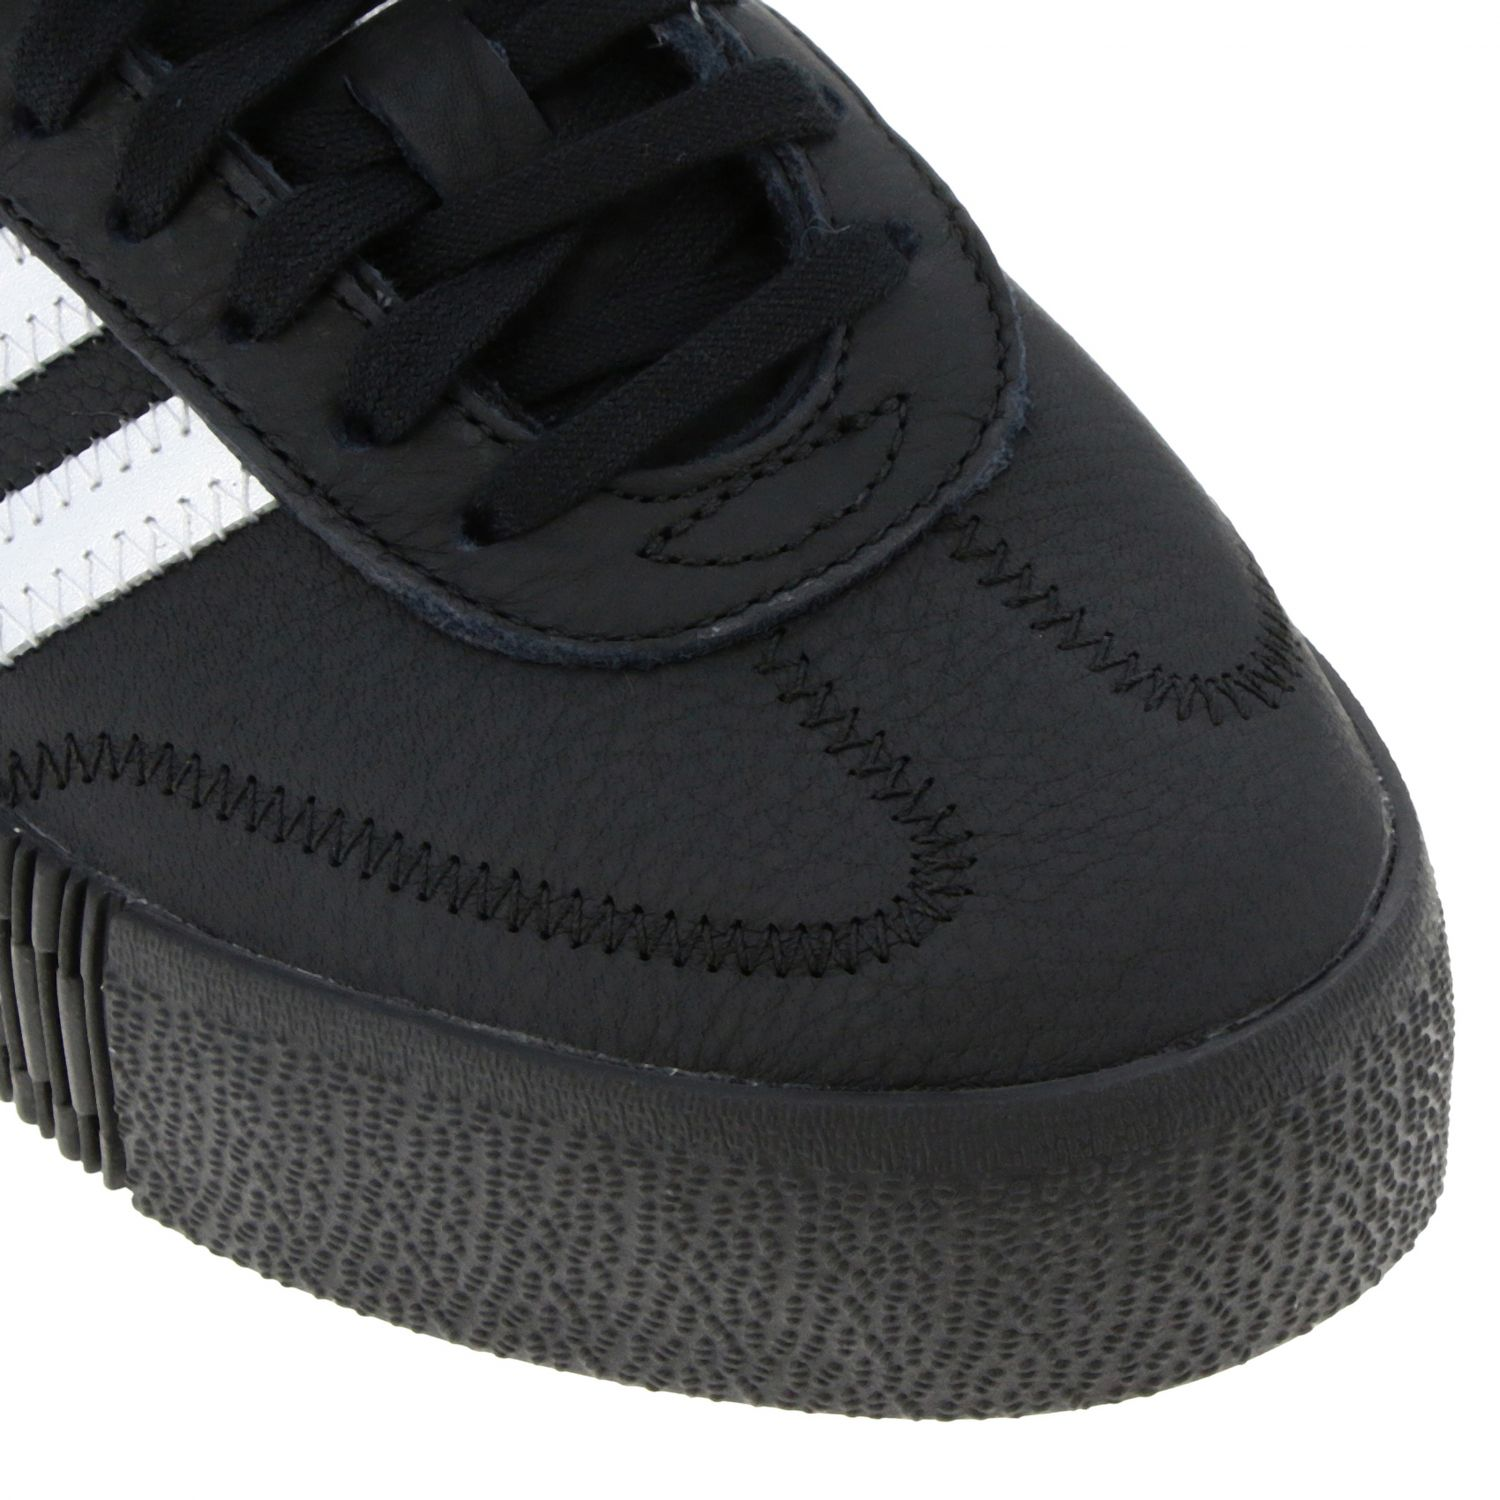 Sneakers Adidas Originals: Adidas Samba Originals By Pharrell Williams sneakers in smooth and laminated leather black 3